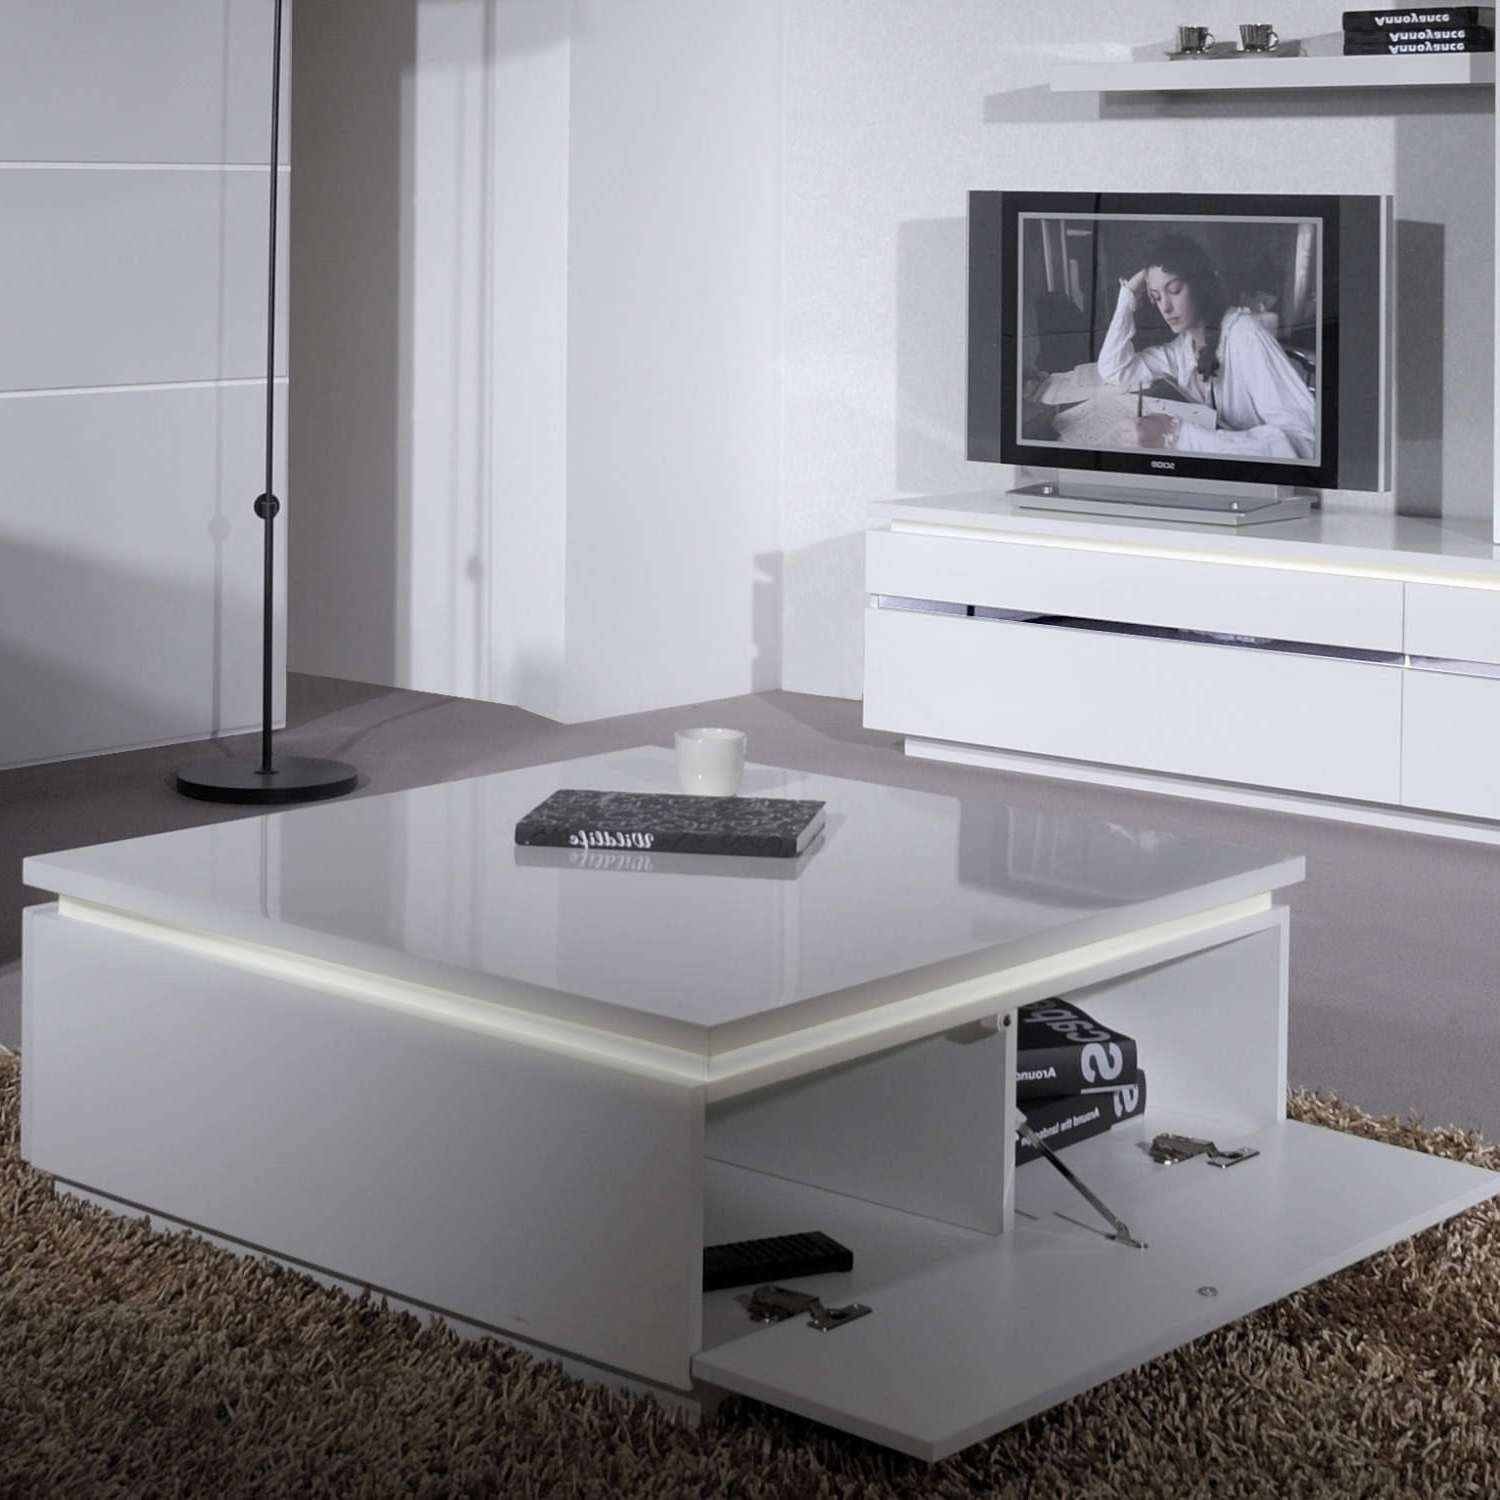 2018 Square White Coffee Tables Inside Coffee Tables : Modern White Square Coffee Table Gallery Images (View 14 of 20)